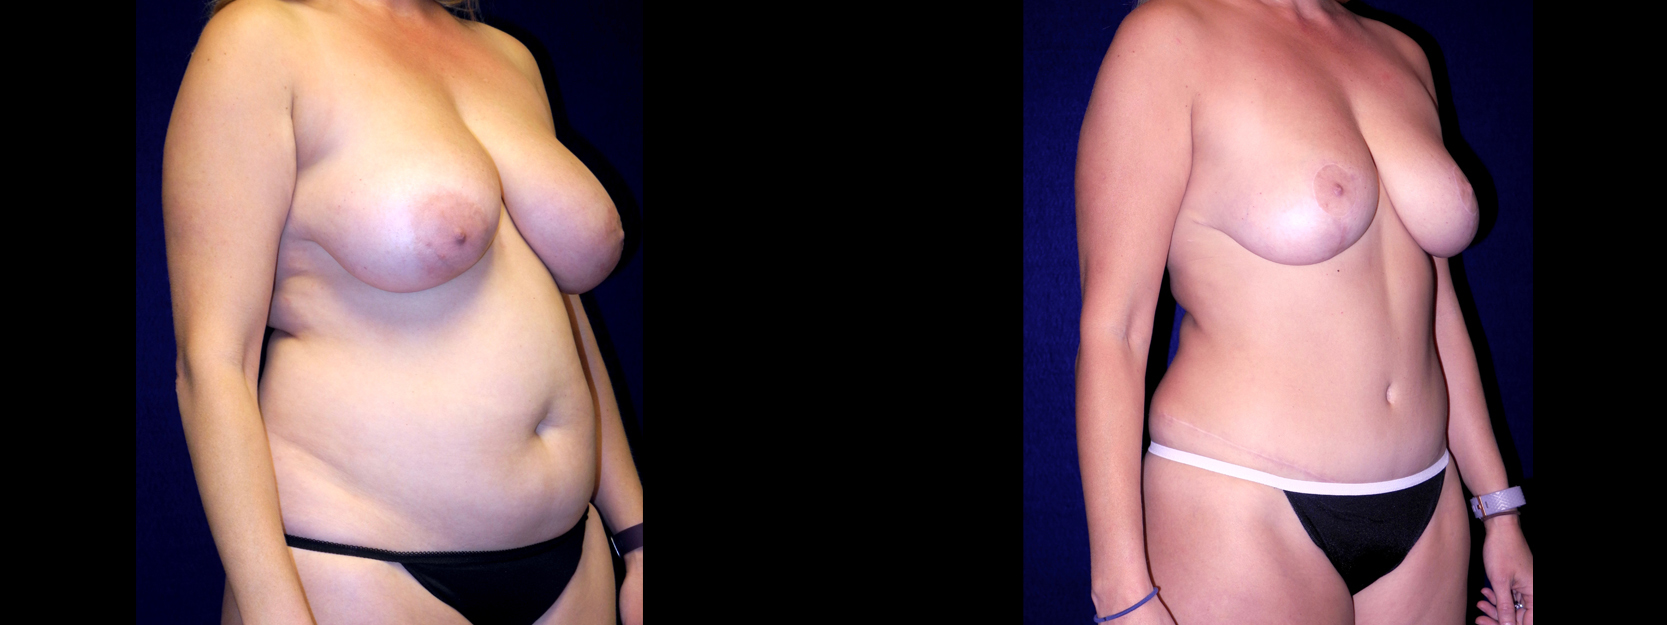 Right 3/4 View - Breast Reduction, Tummy Tuck, Liposuction